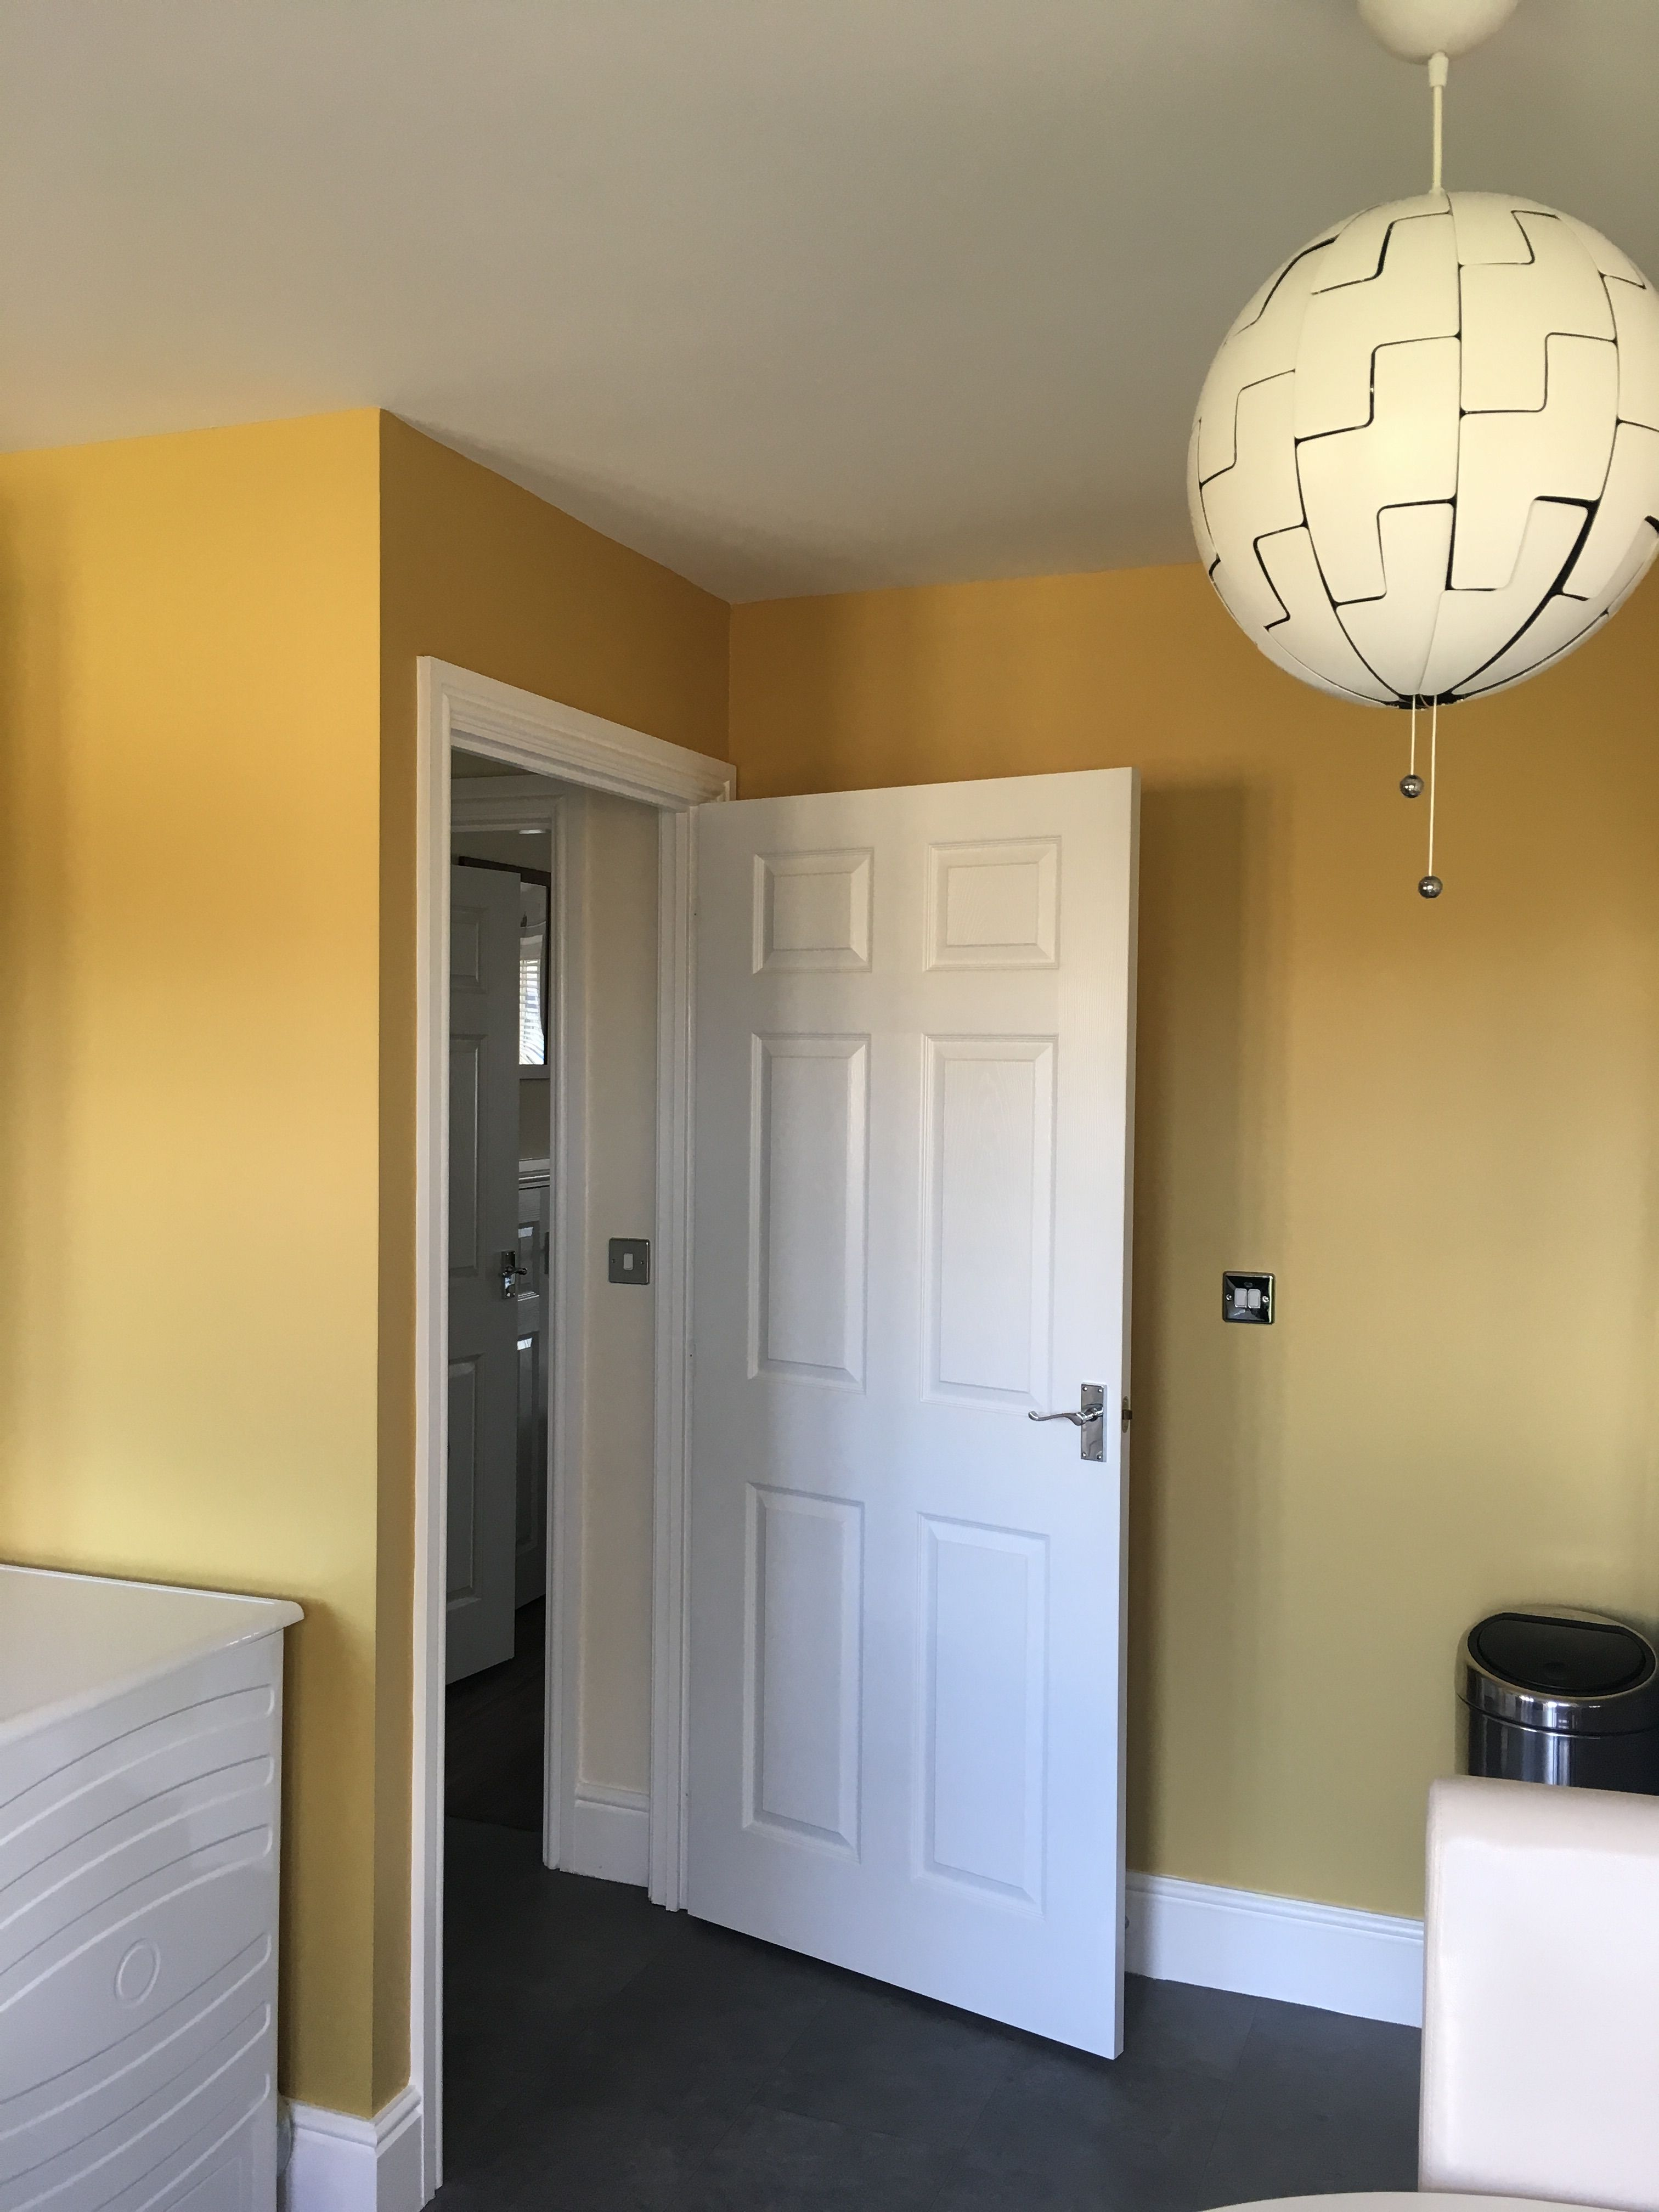 Painted In Valspar Mustard Yellow